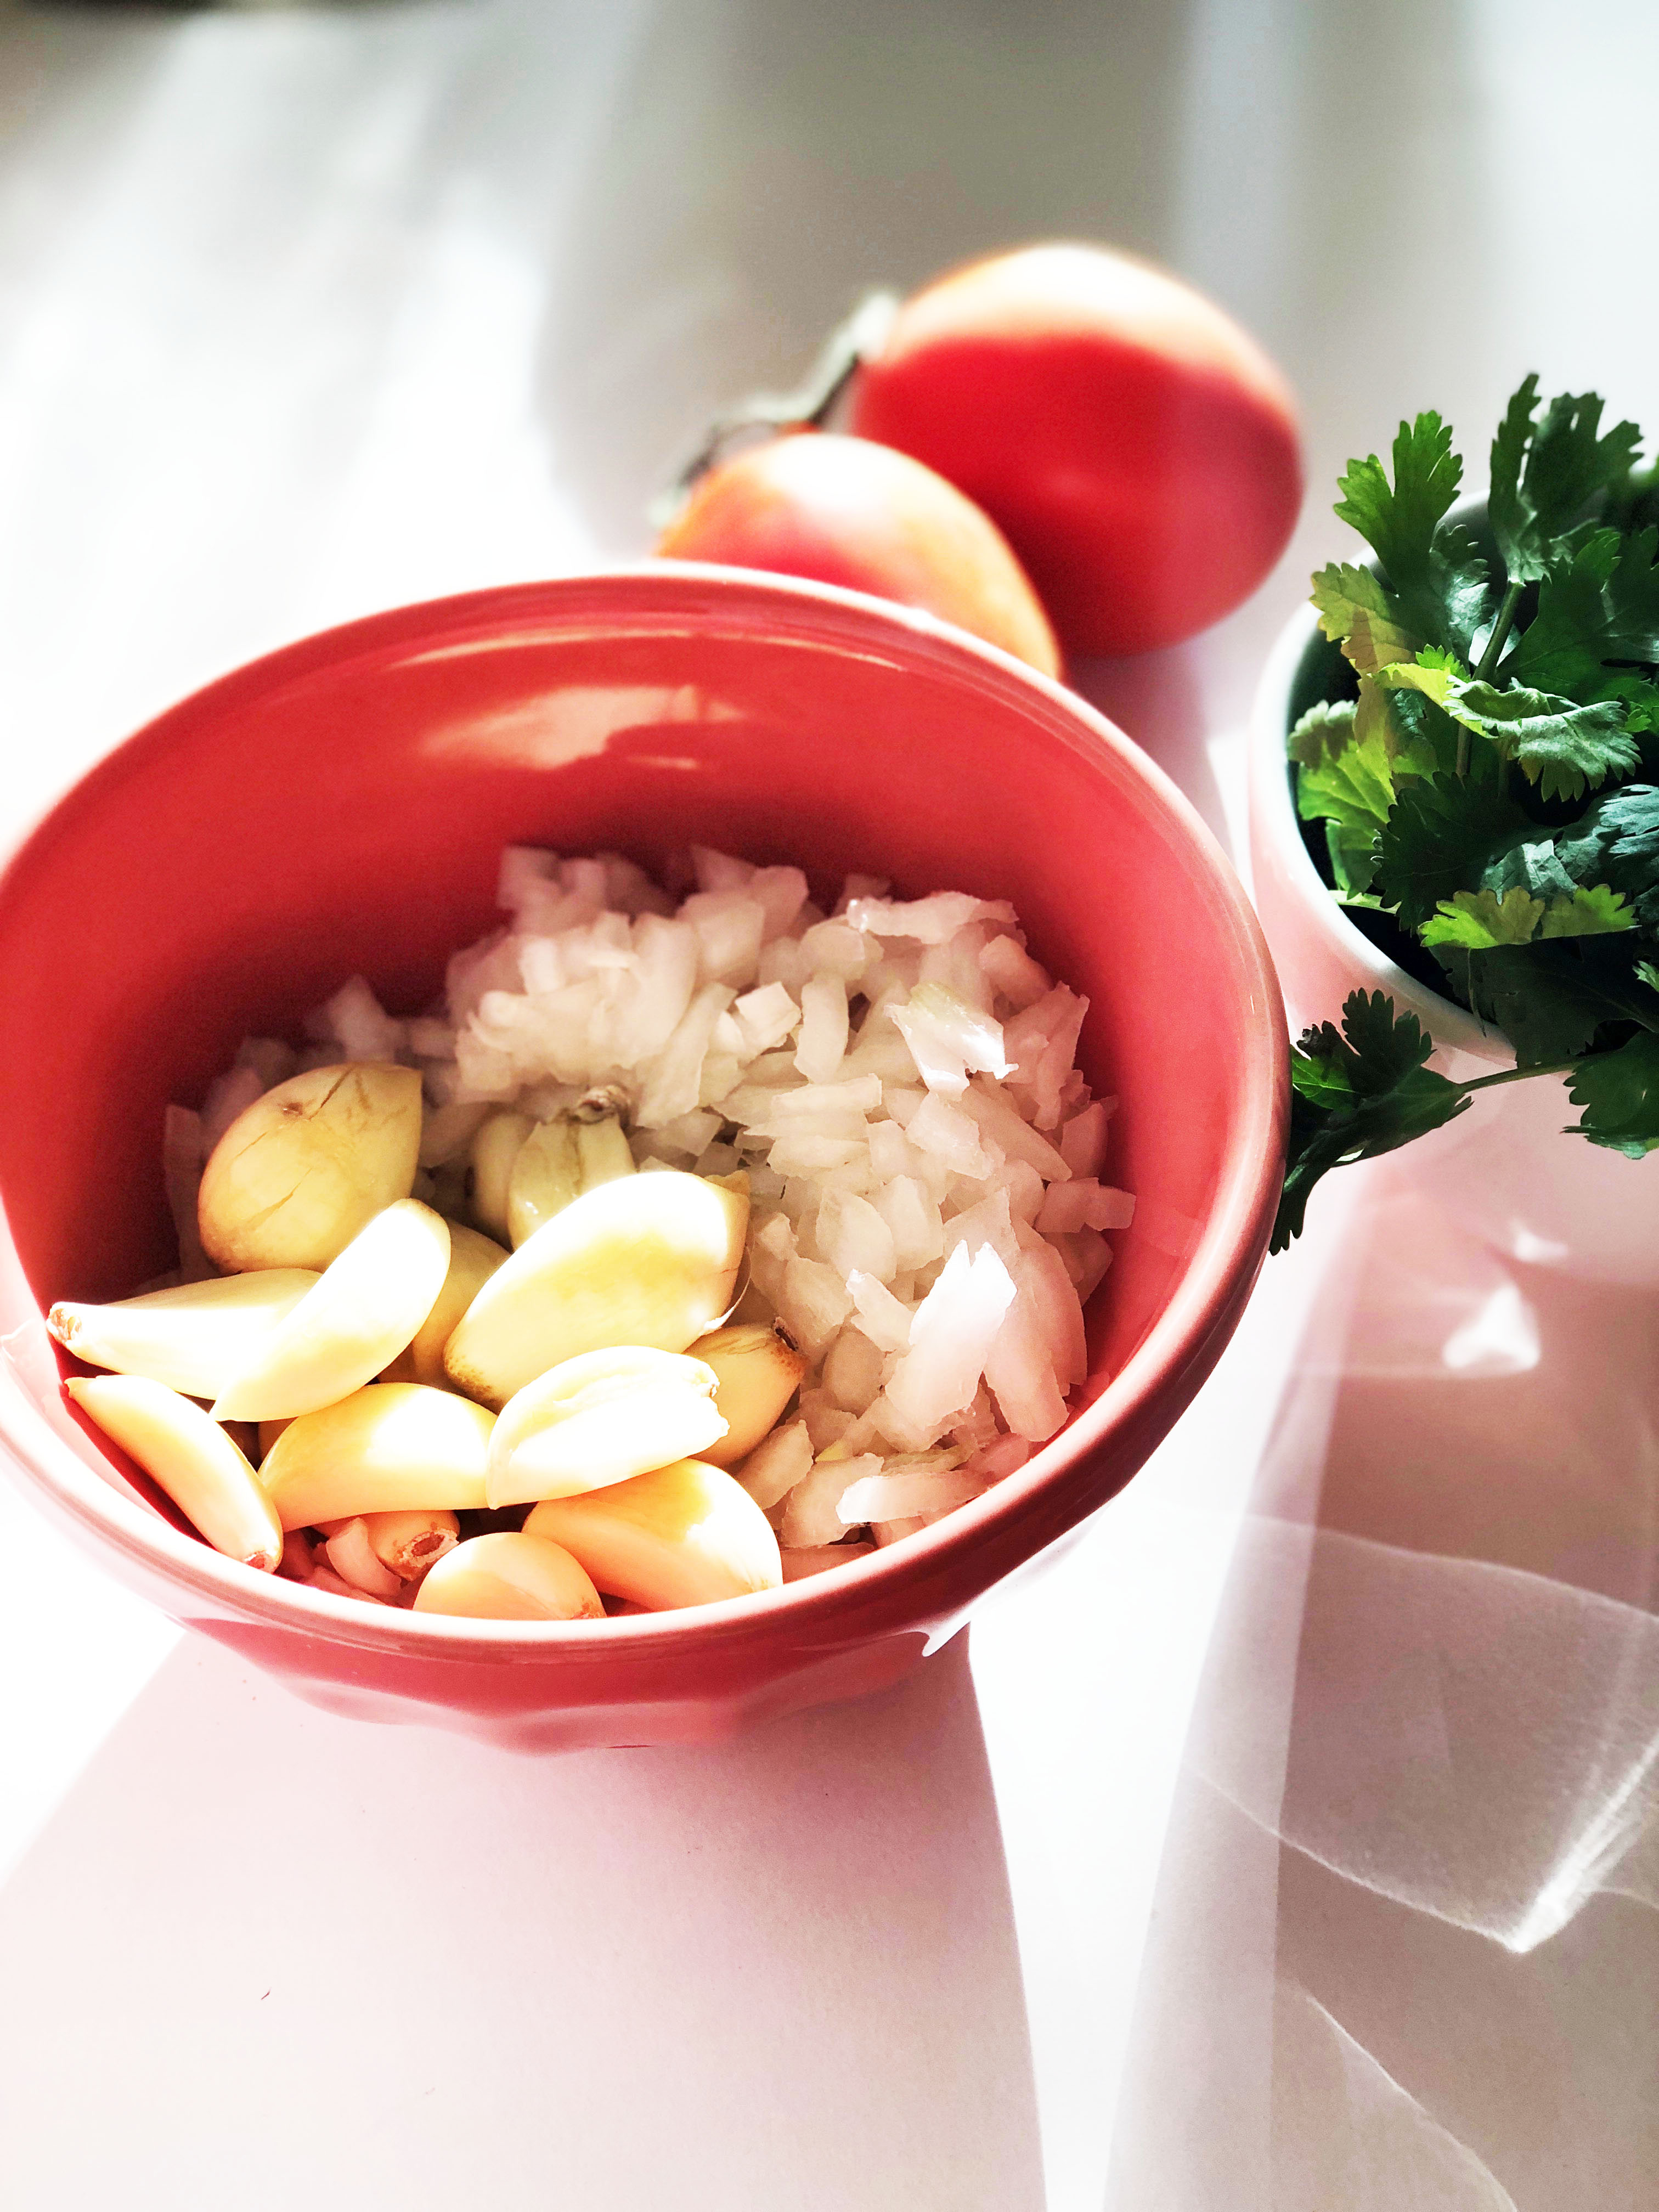 If you love rice & beans, you will LOVE this healthier twist using quinoa instead of rice. Fewer carbs, double the nutrition and taste. So yummy!